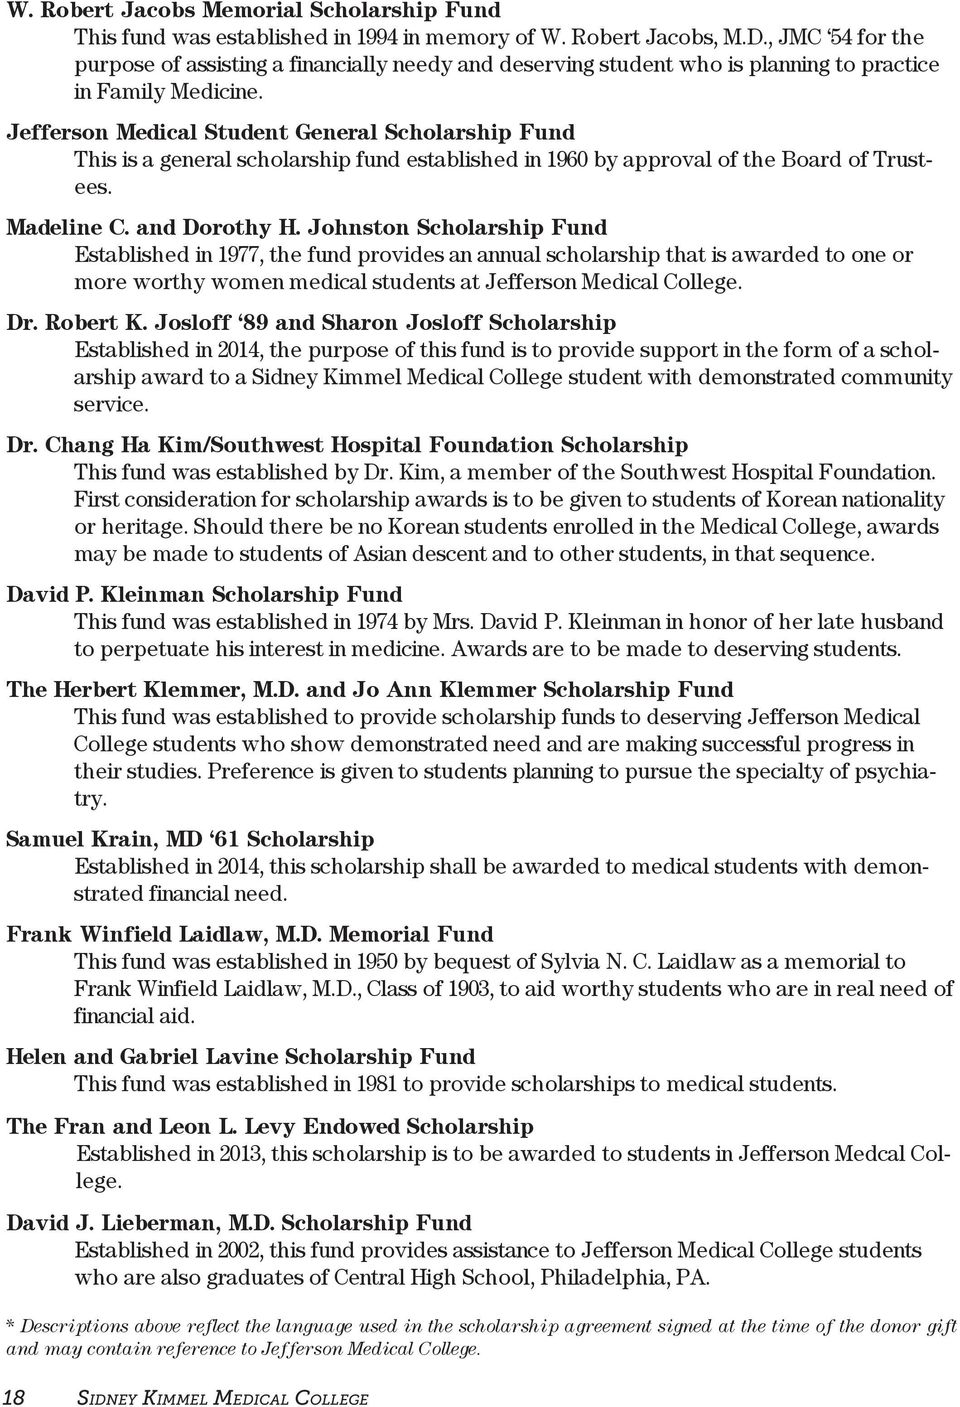 Jefferson Medical Student General Scholarship Fund This is a general scholarship fund established in 1960 by approval of the Board of Trustees. Madeline C. and Dorothy H.